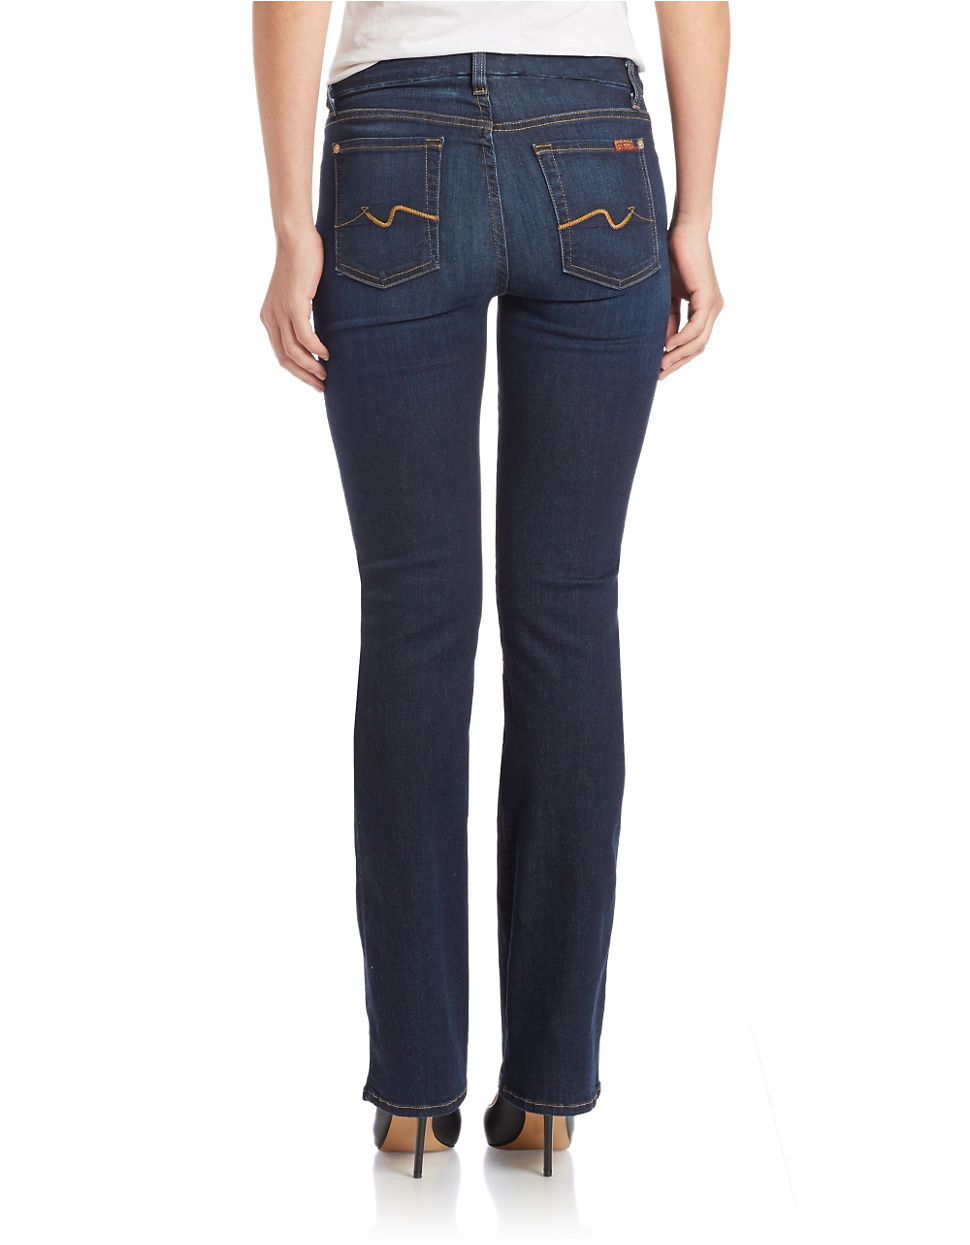 7 for all mankind kimmie bootcut jeans in blue slim illusion tried true lyst. Black Bedroom Furniture Sets. Home Design Ideas